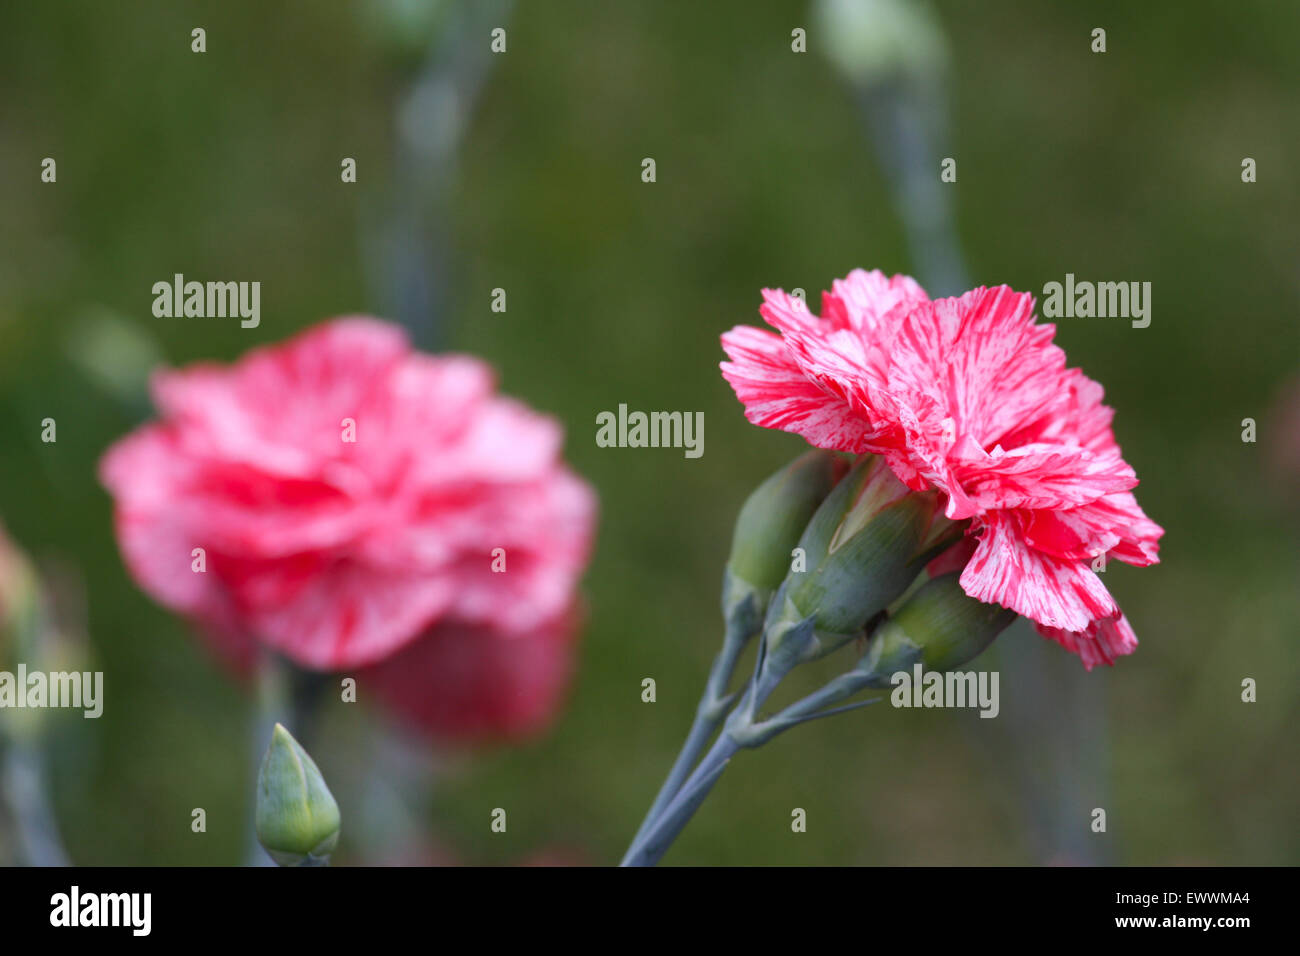 Red white dianthus flowers Stock Photo